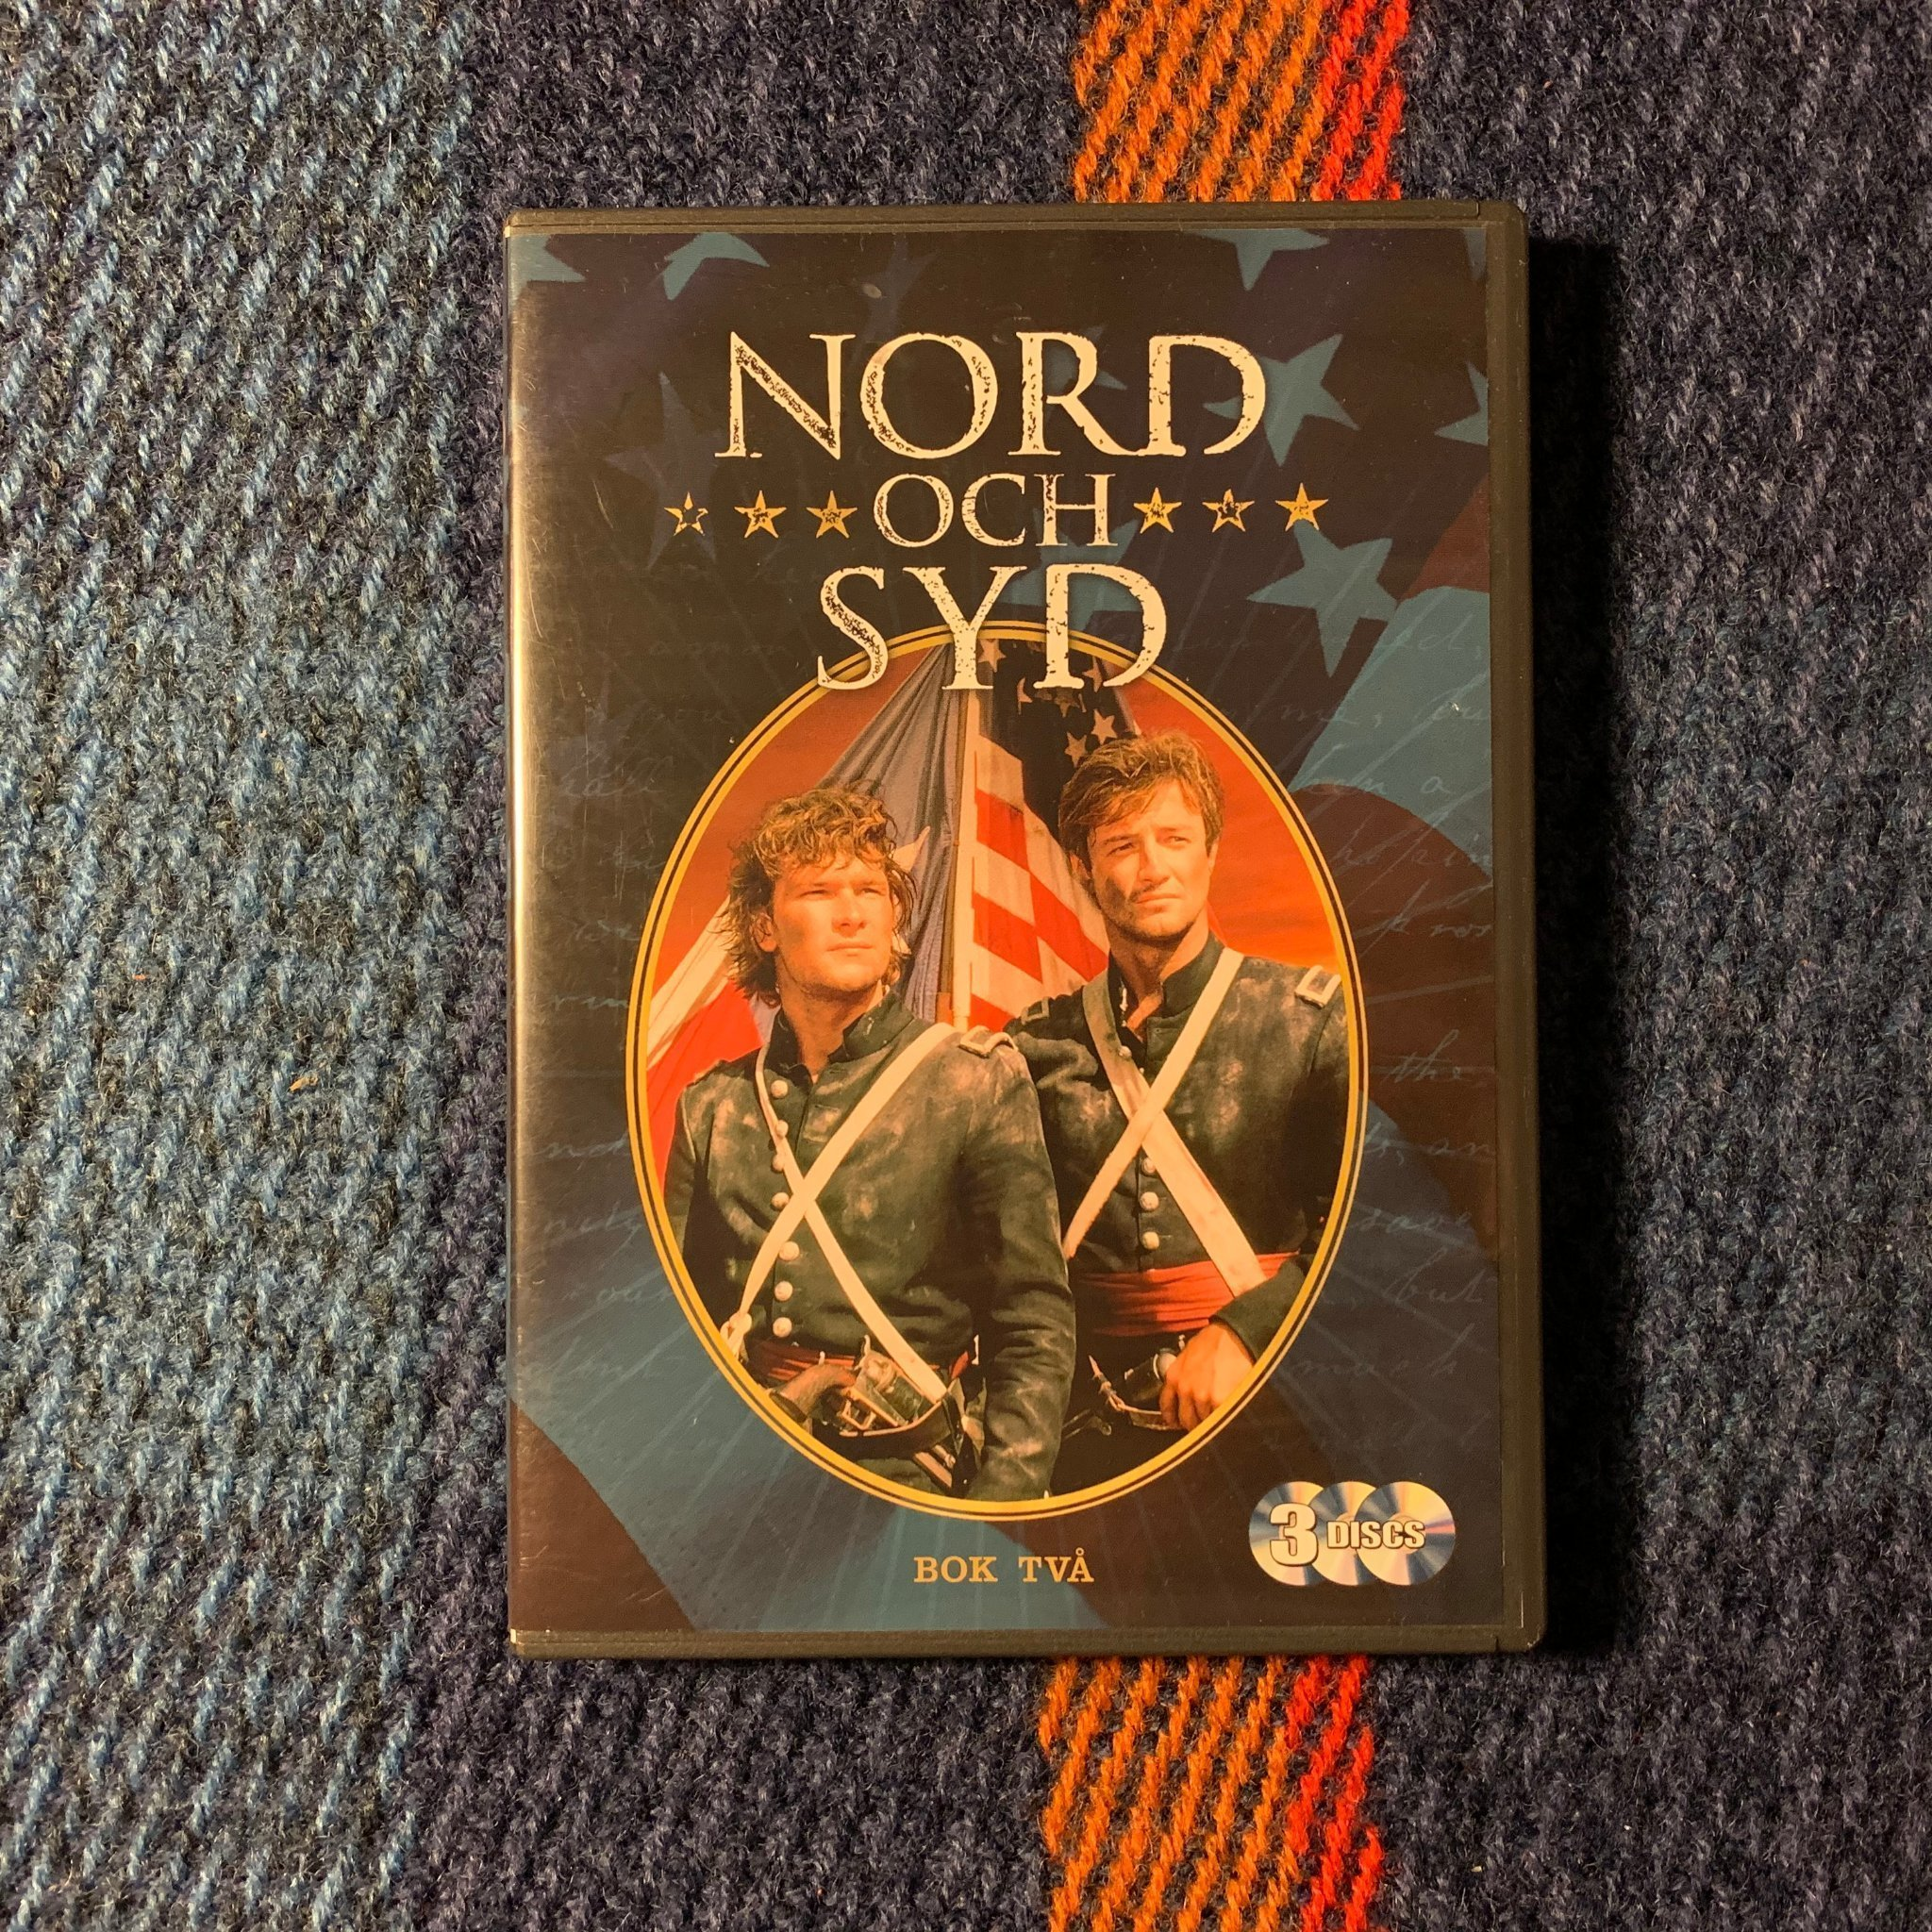 Nord och syd (Bok 2) Box nr 2 - DVD Love and war Patrick Swayze